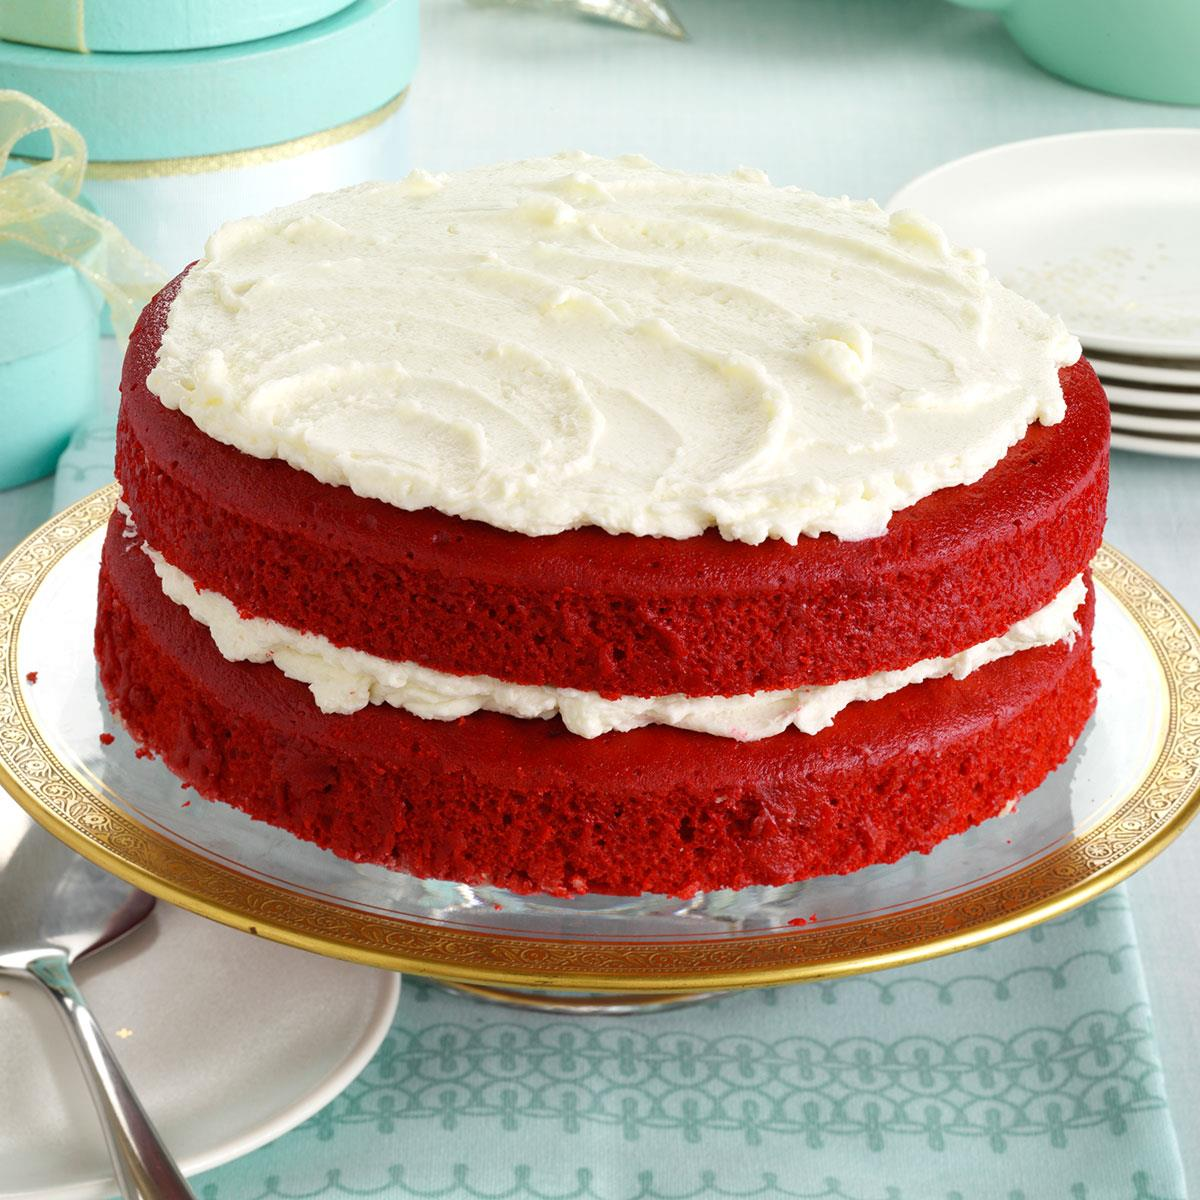 Amazing Makeover Red Velvet Cake Recipe Taste Of Home Birthday Cards Printable Benkemecafe Filternl